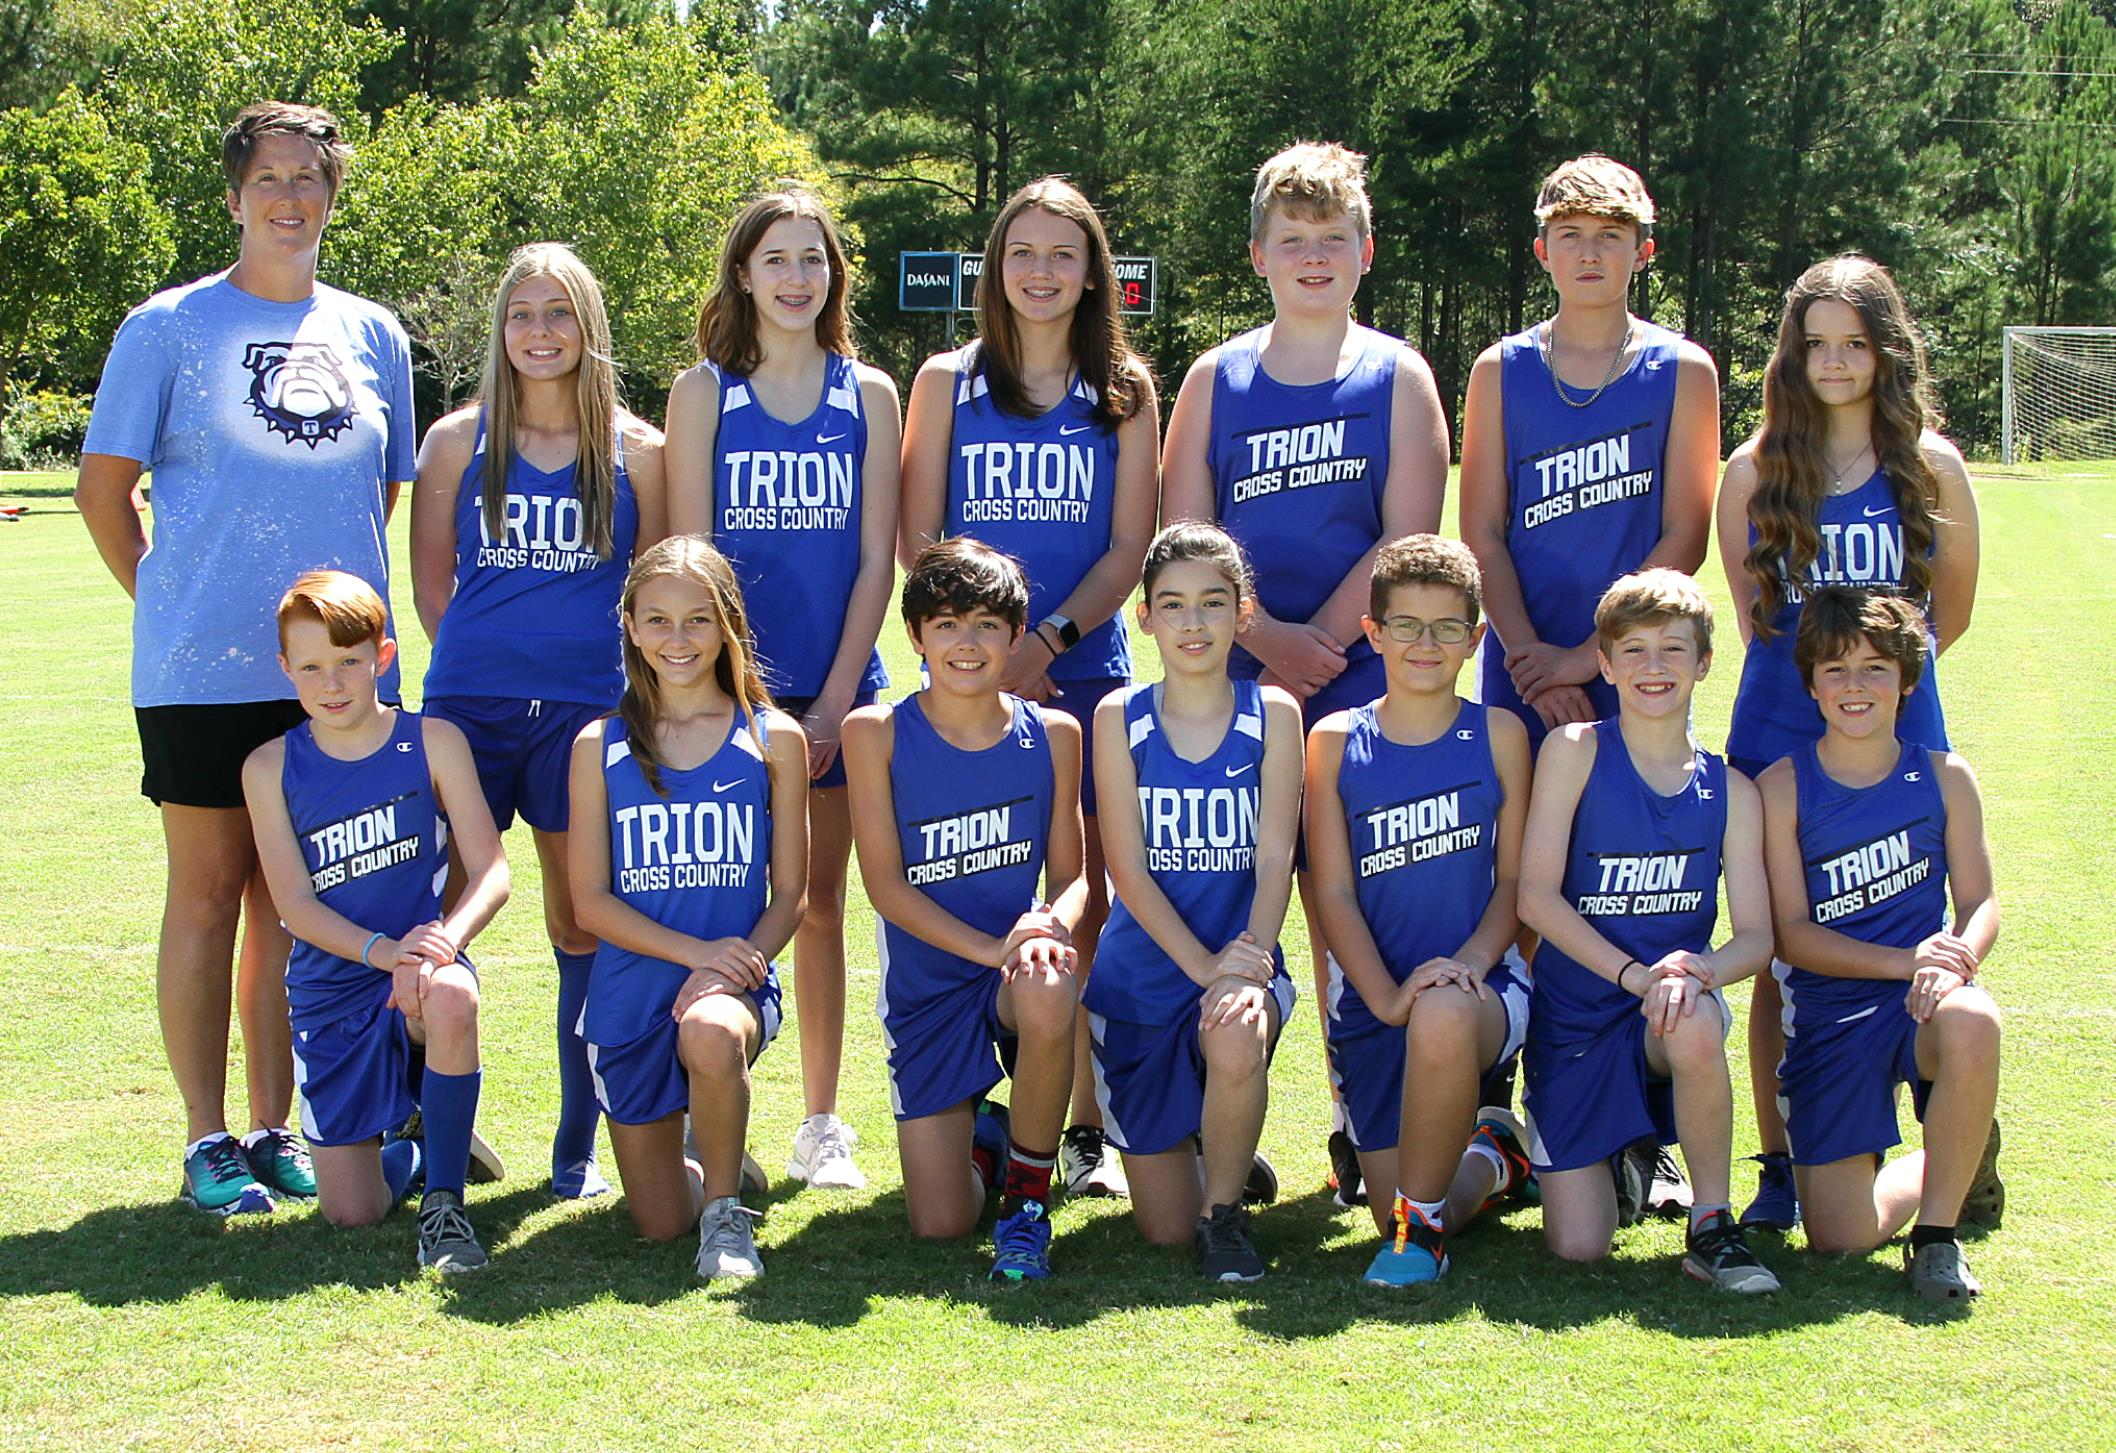 Trion Middle School Cross Country Team